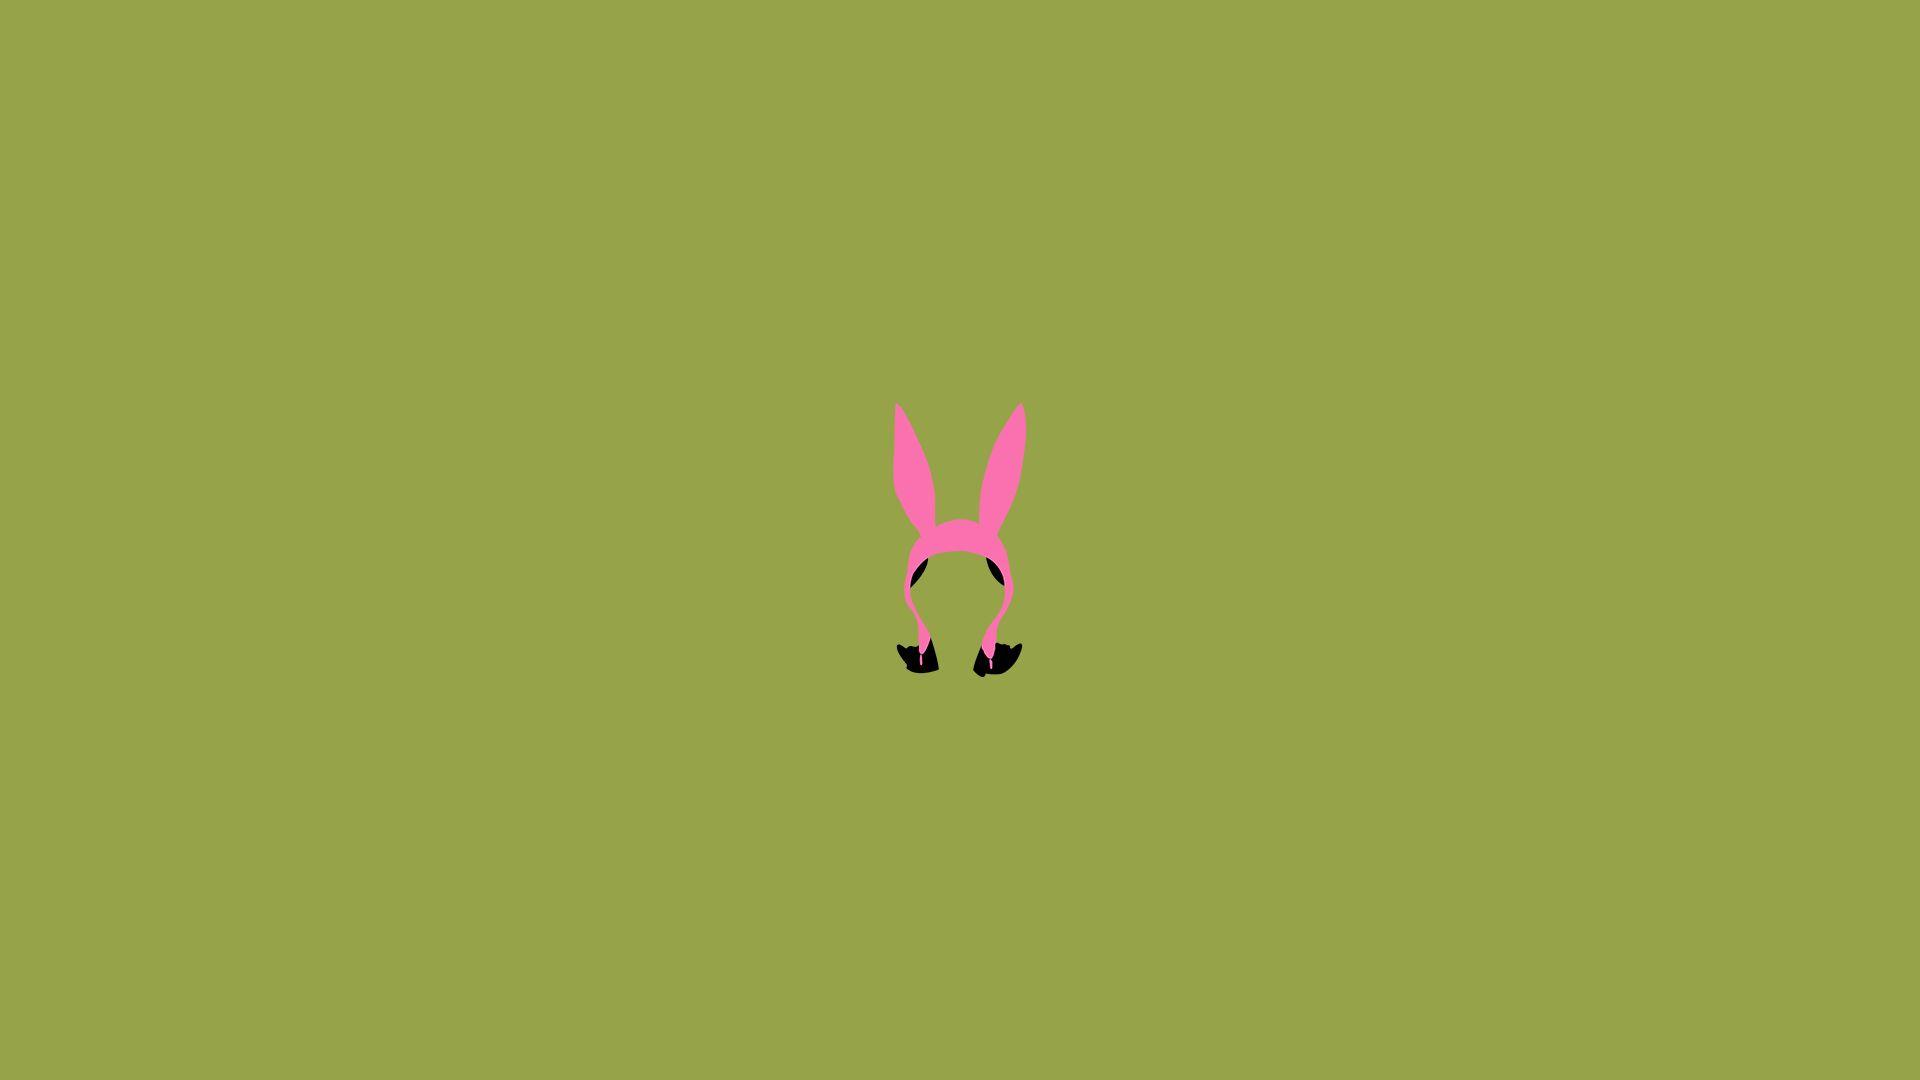 Minimalist Bob's Burgers Wallpapers